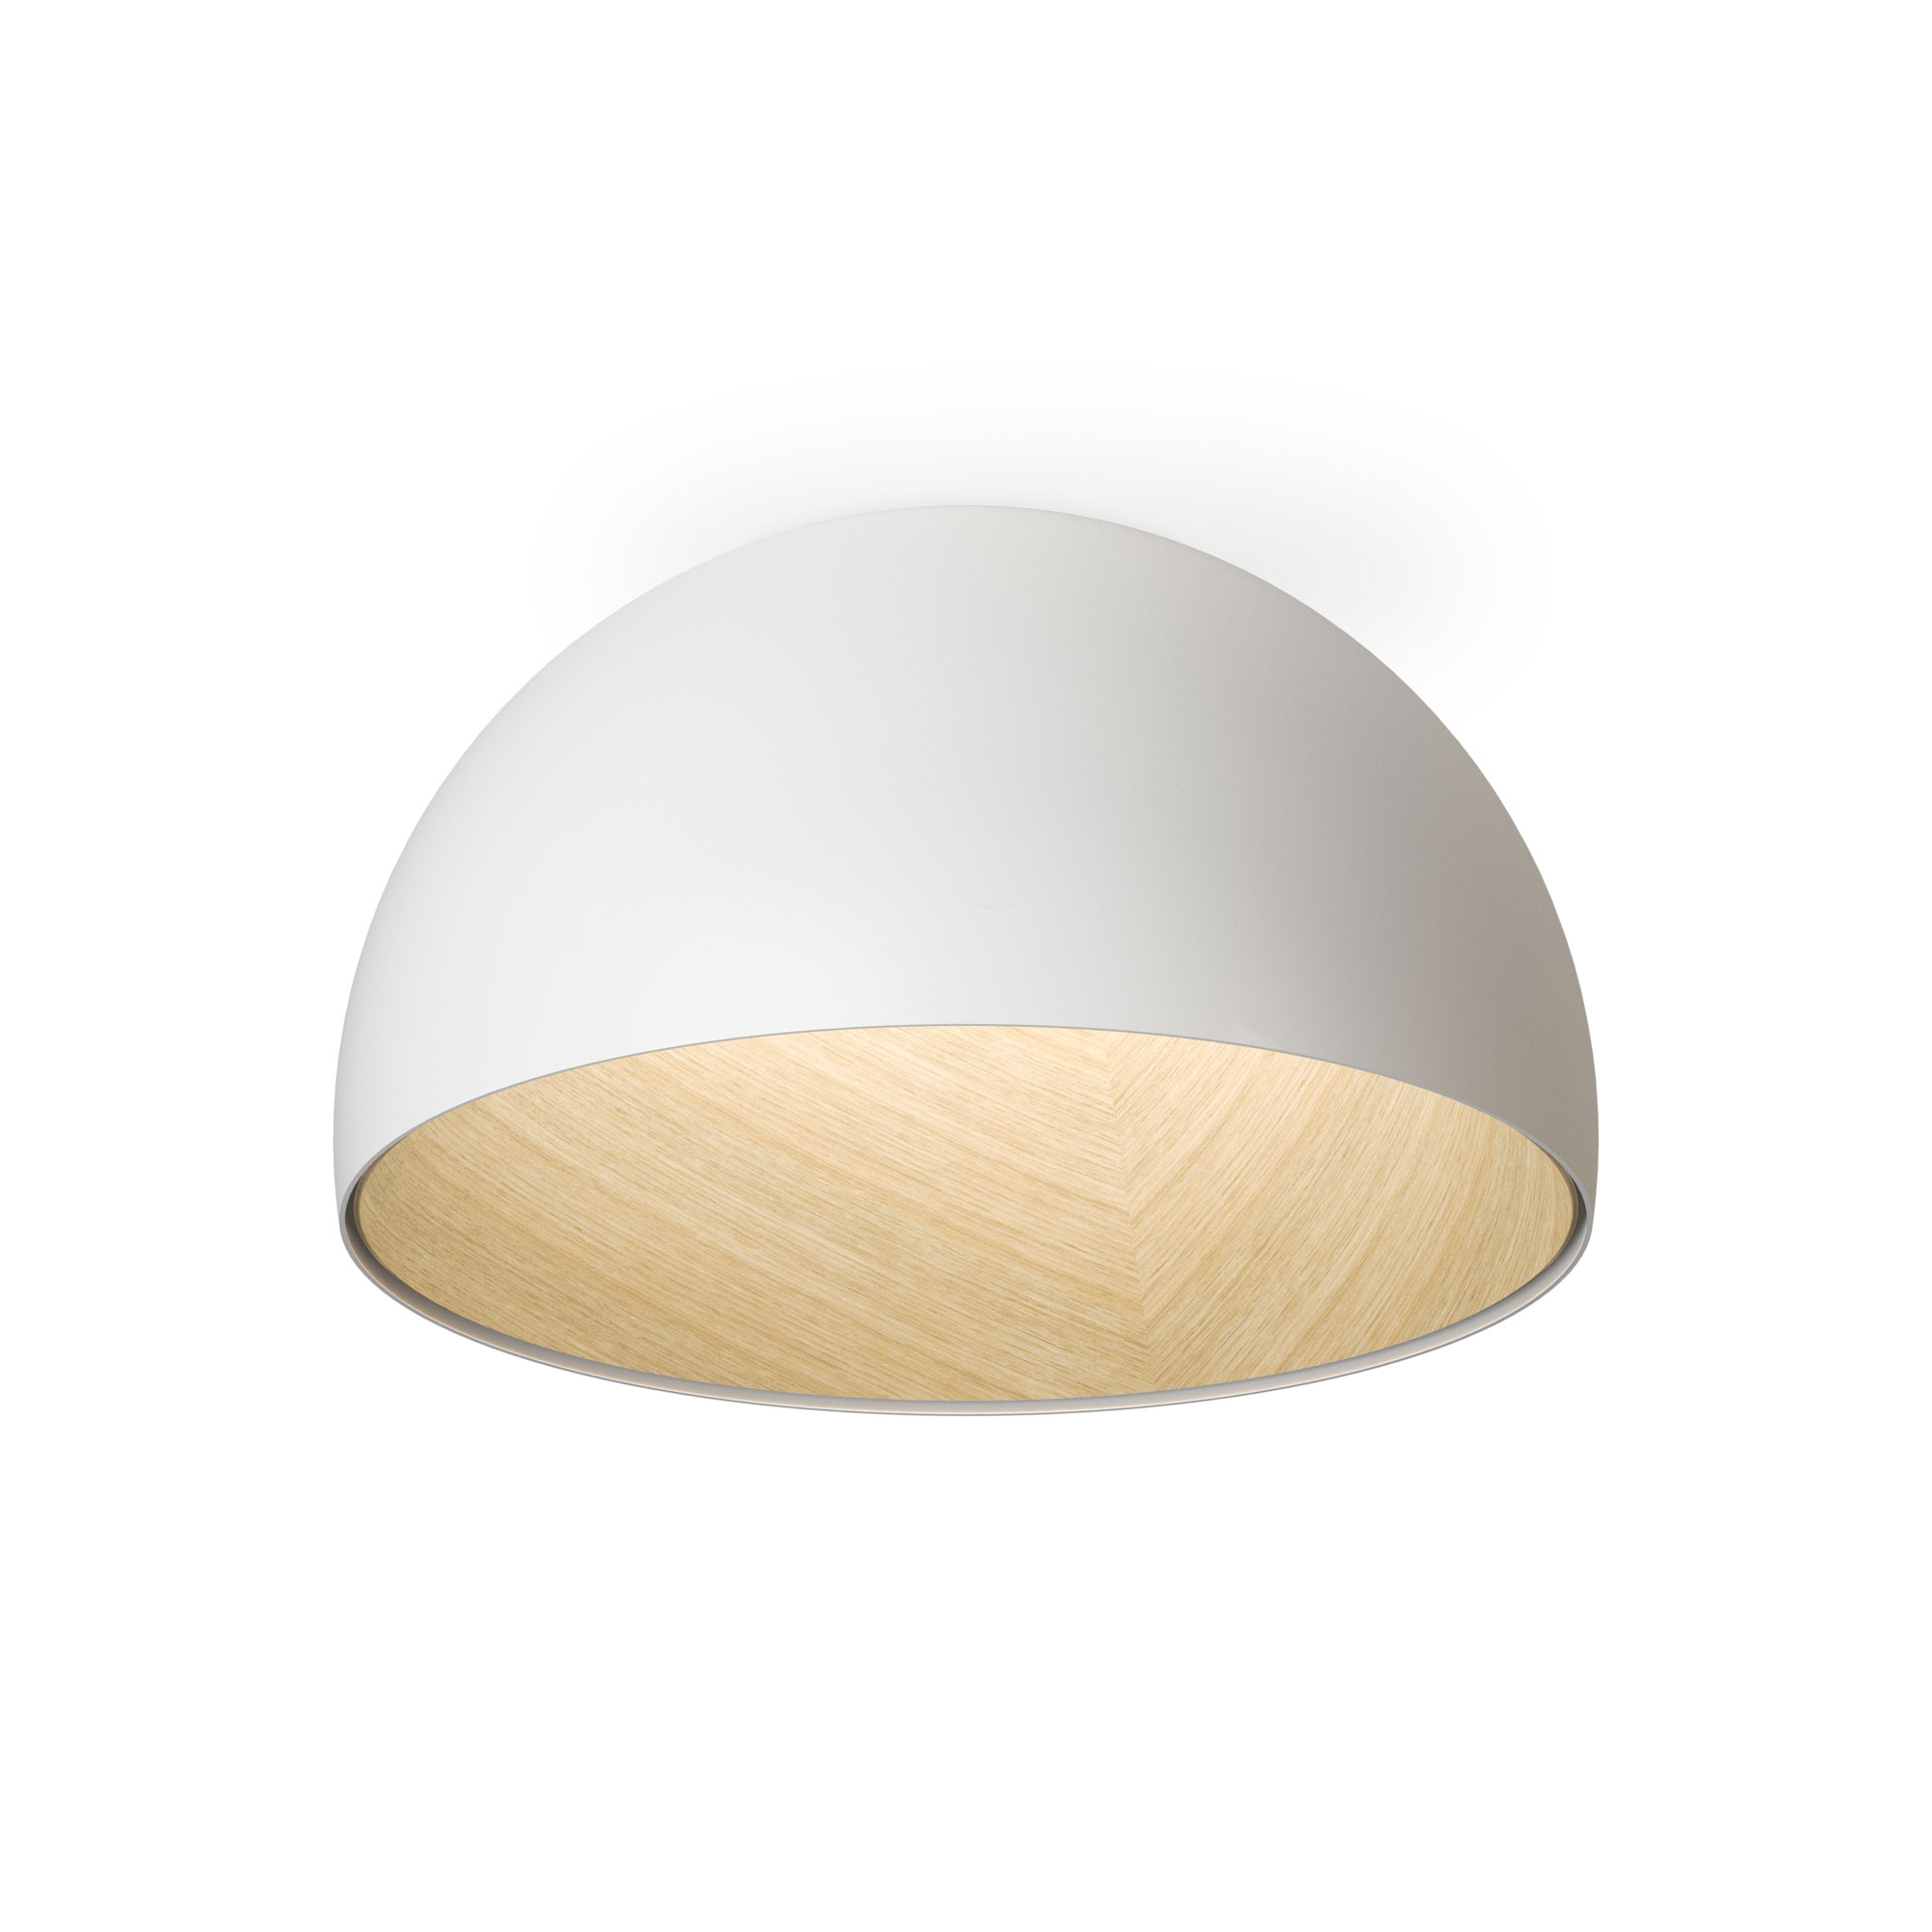 Duo inverted bowl ceiling light fixture by vibia